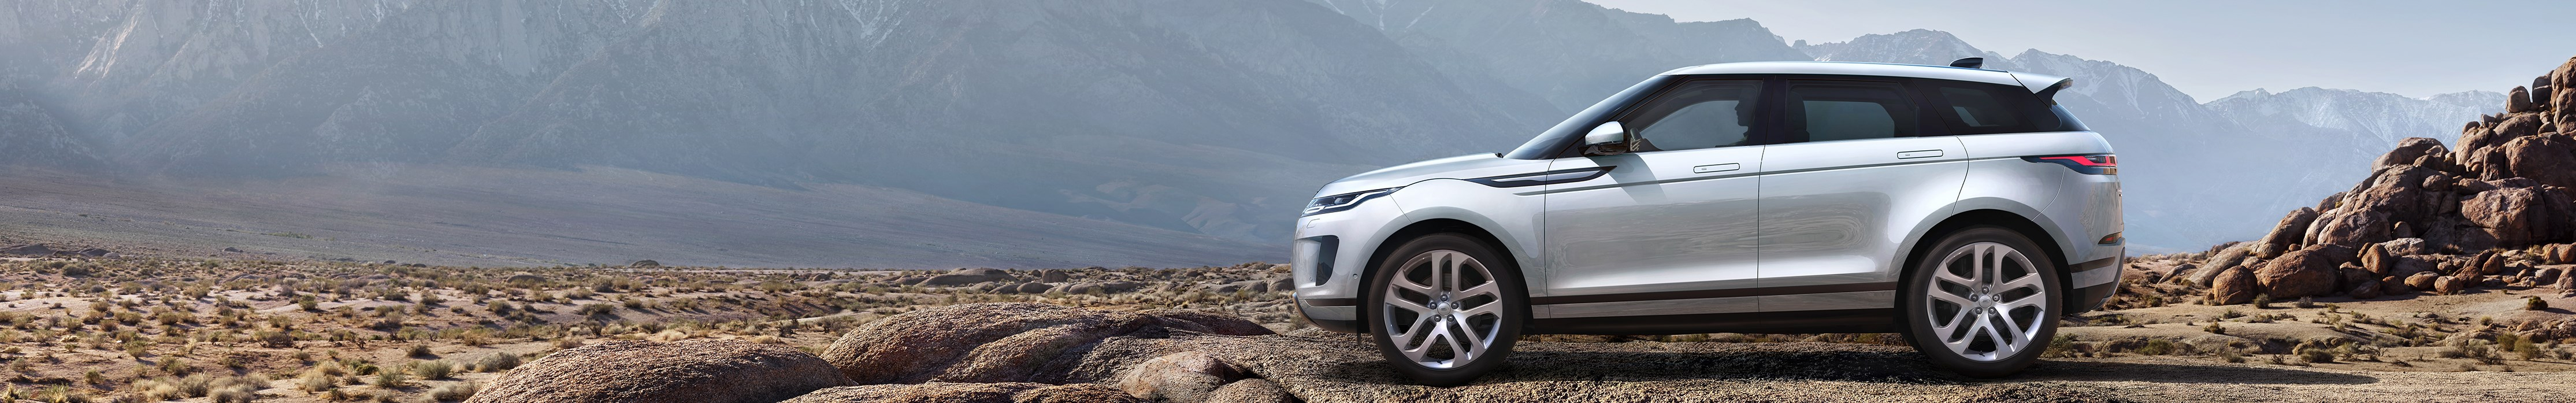 Evoque in der Natur